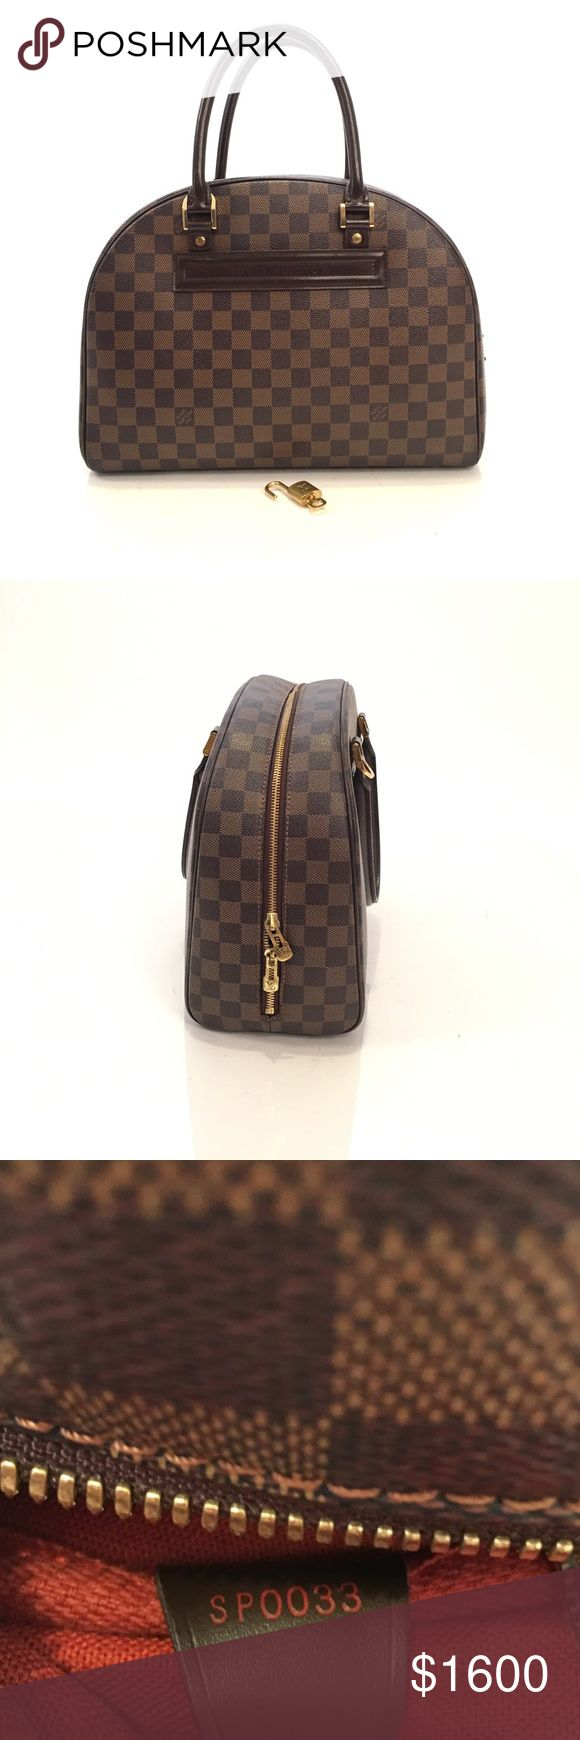 Louis Vuitton Damier Ebene Nolita 100% authentic. Made in France. Date code: SP 0033. Monogram canvas is in great condition. Zipper glides smoothly. Perfect for travel or everyday use. It has a lot of space. It comes with original Lock and key. Interior has some ink marks but to tears.  It has a little minor mark on the bottom (please check all the photos ) Overall, it has normal signs of use but it's still in very condition. 🚫No trade please. Louis Vuitton Bags Satchels